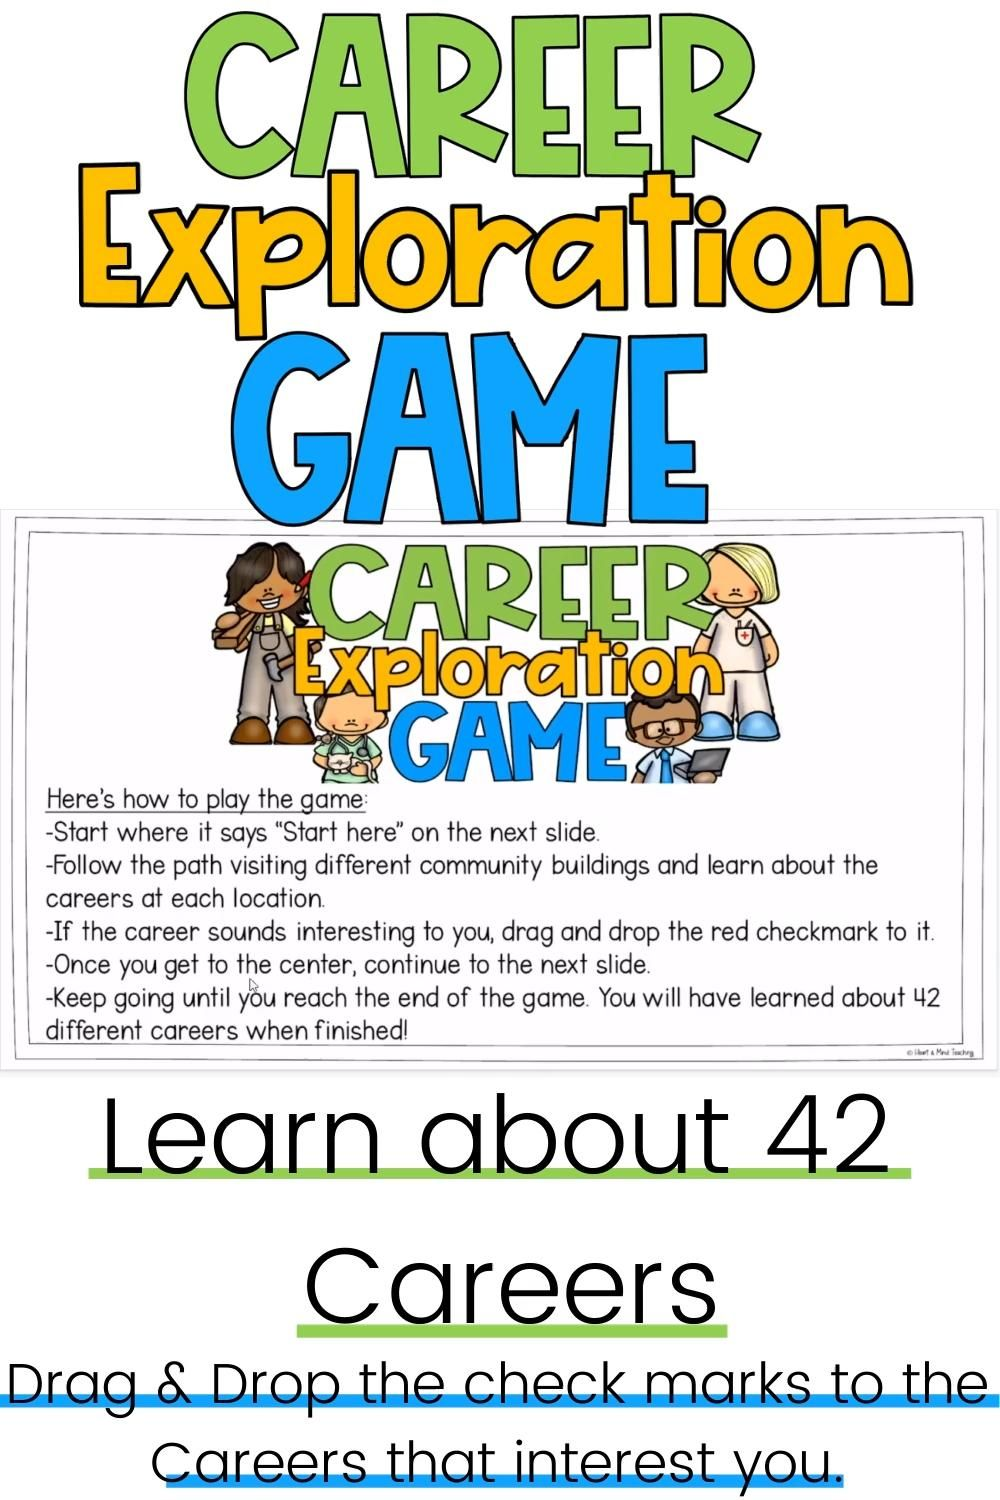 Digital Career Exploration Game Video Elementary Counseling Early Elementary Resources Upper Elementary Resources